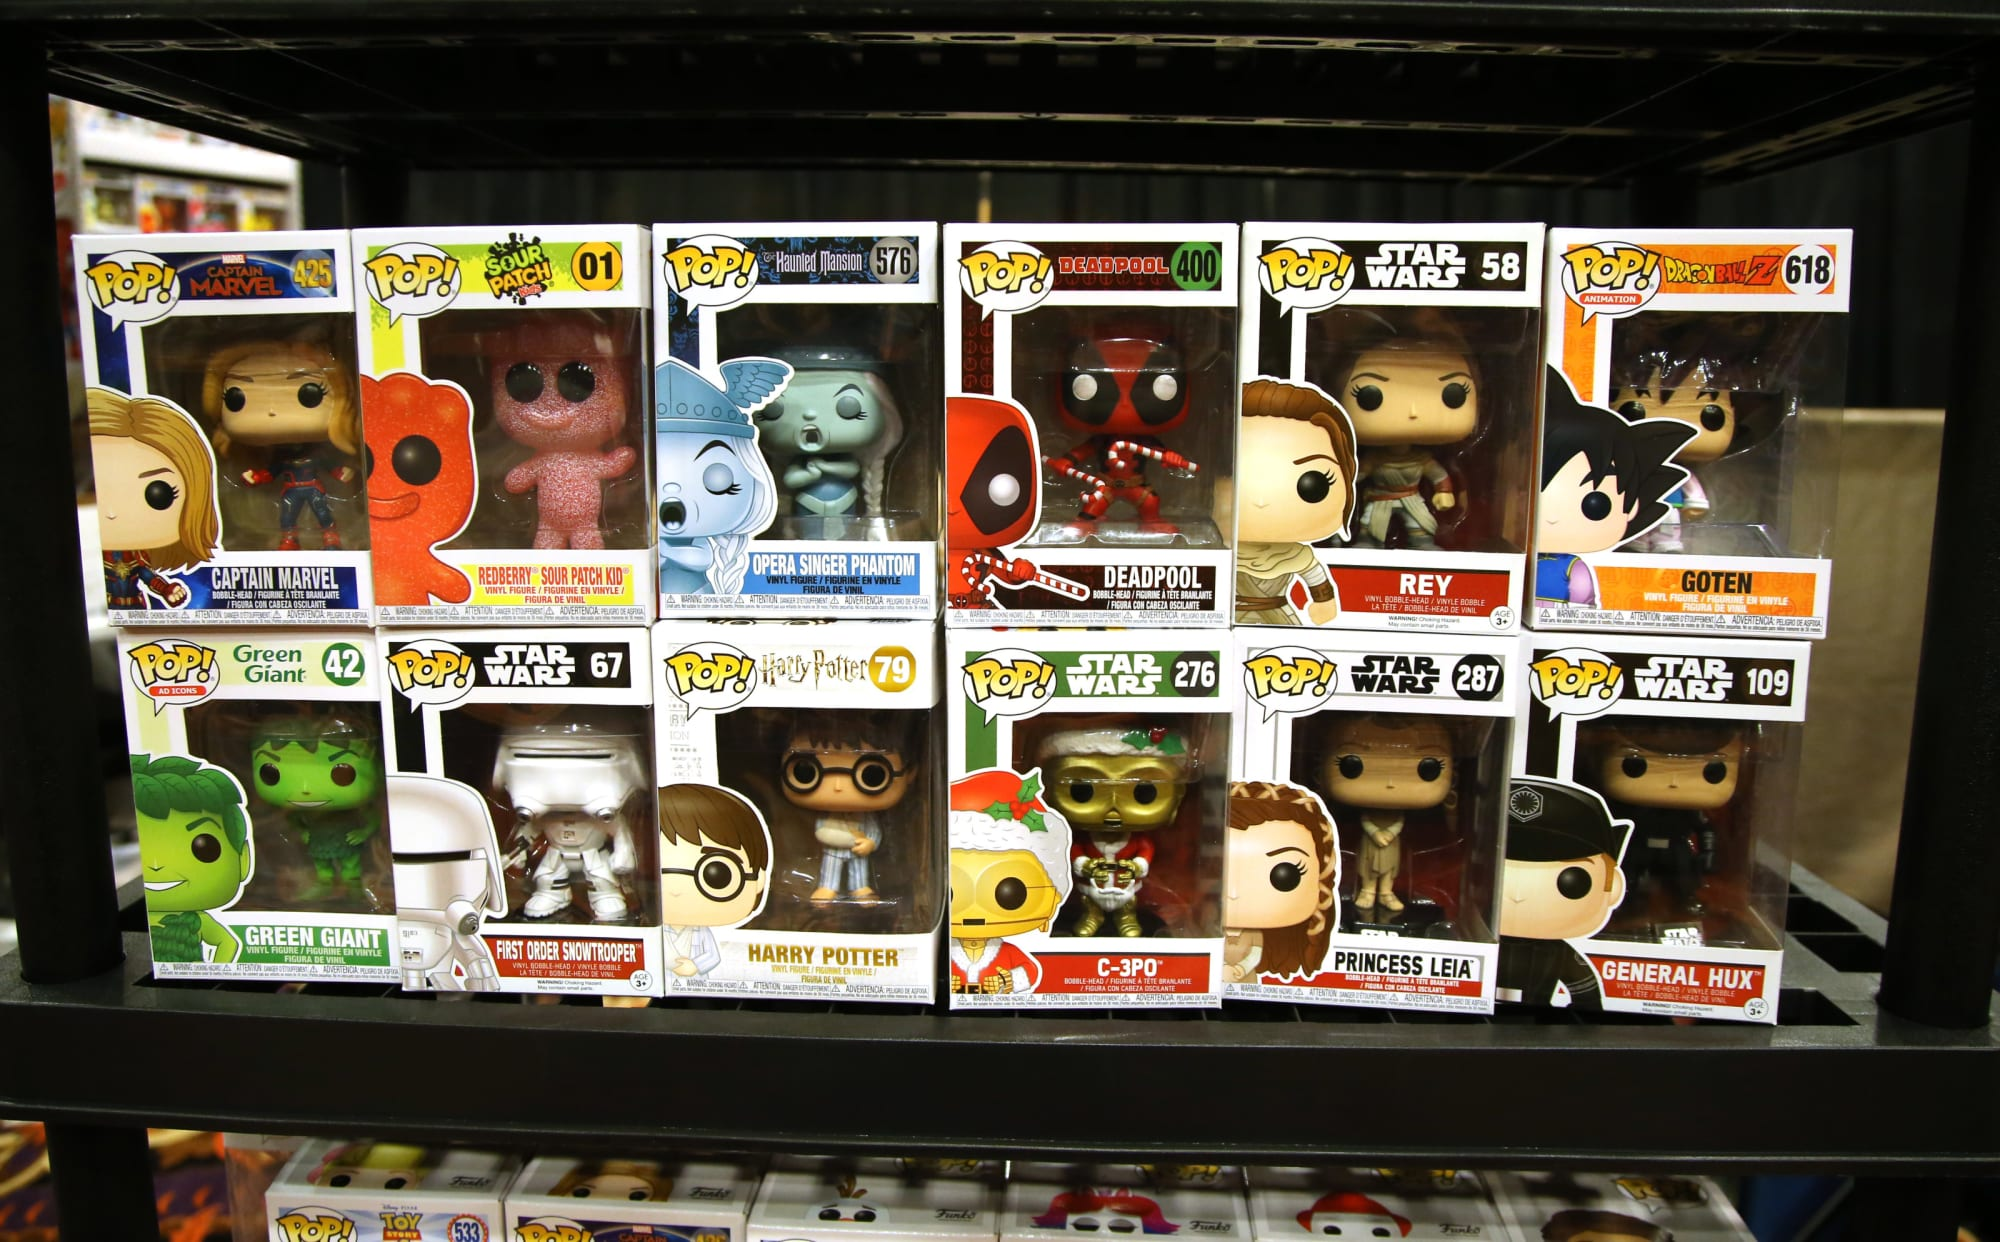 Army of Darkness: Hot Topic Ash Funko Pop will hit stores in the fall